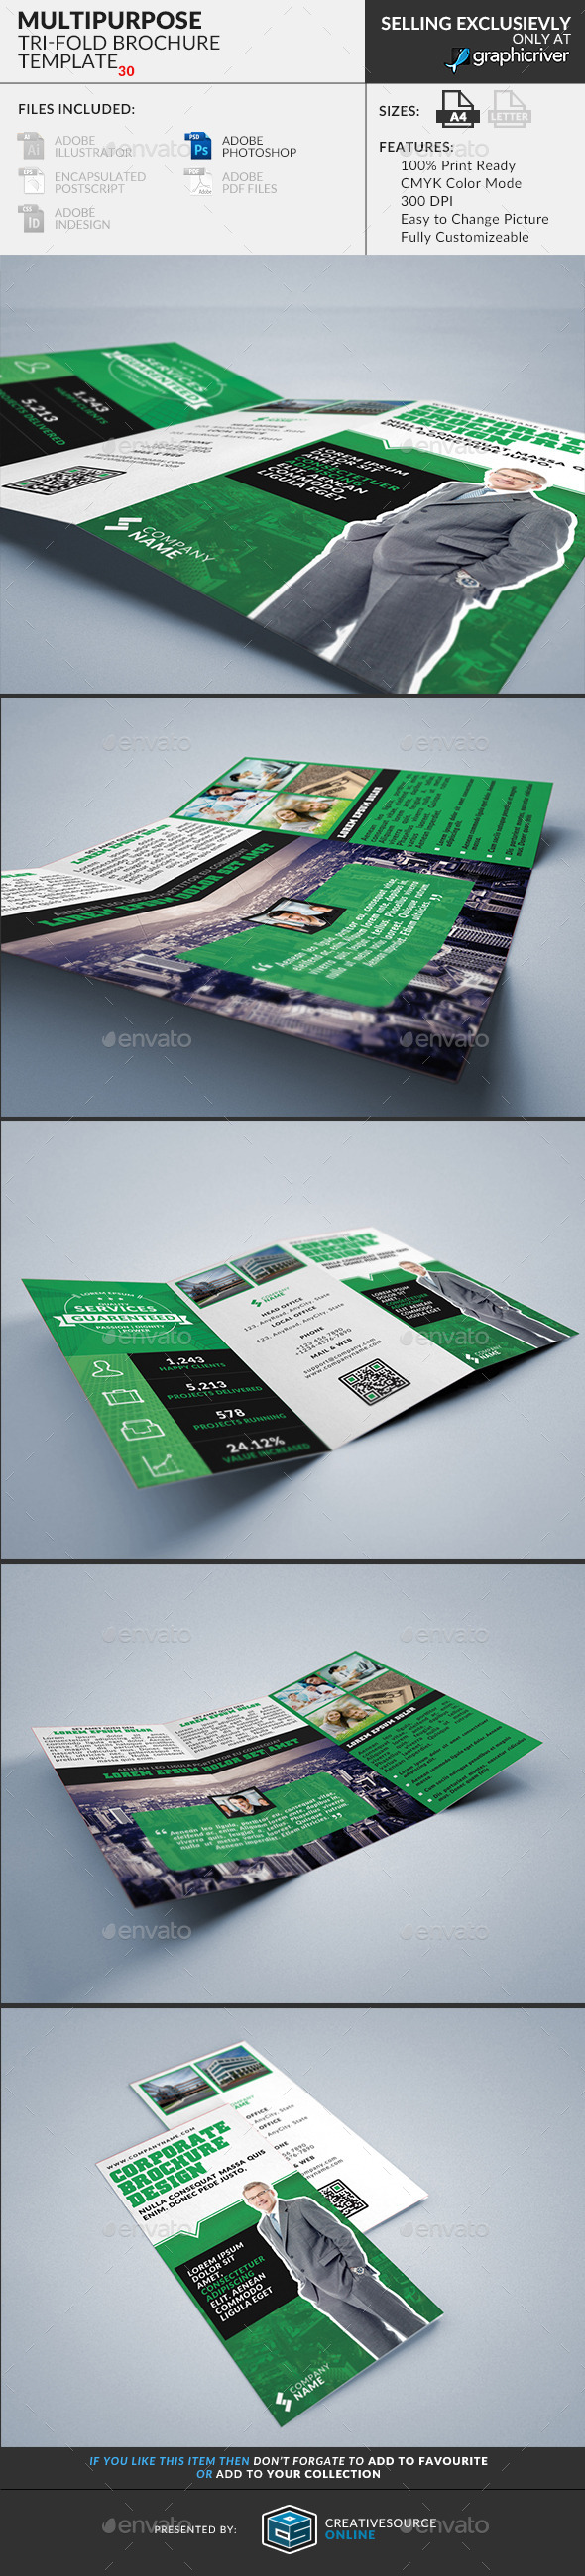 Trifold Brochure 30 : Multipurpose - Corporate Brochures